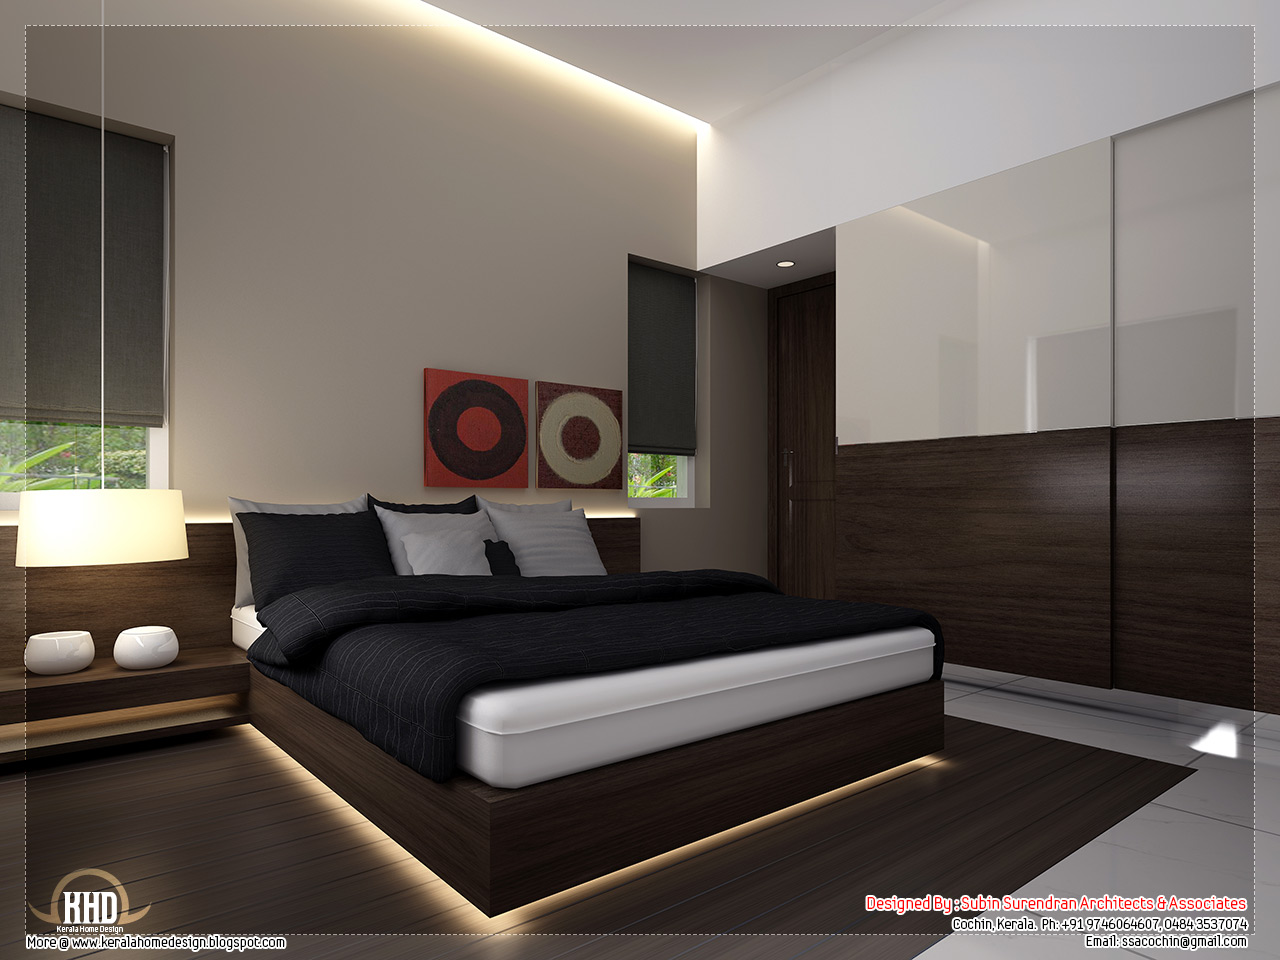 Beautiful home interior designs kerala home design and floor plans - Bedroom designers ...